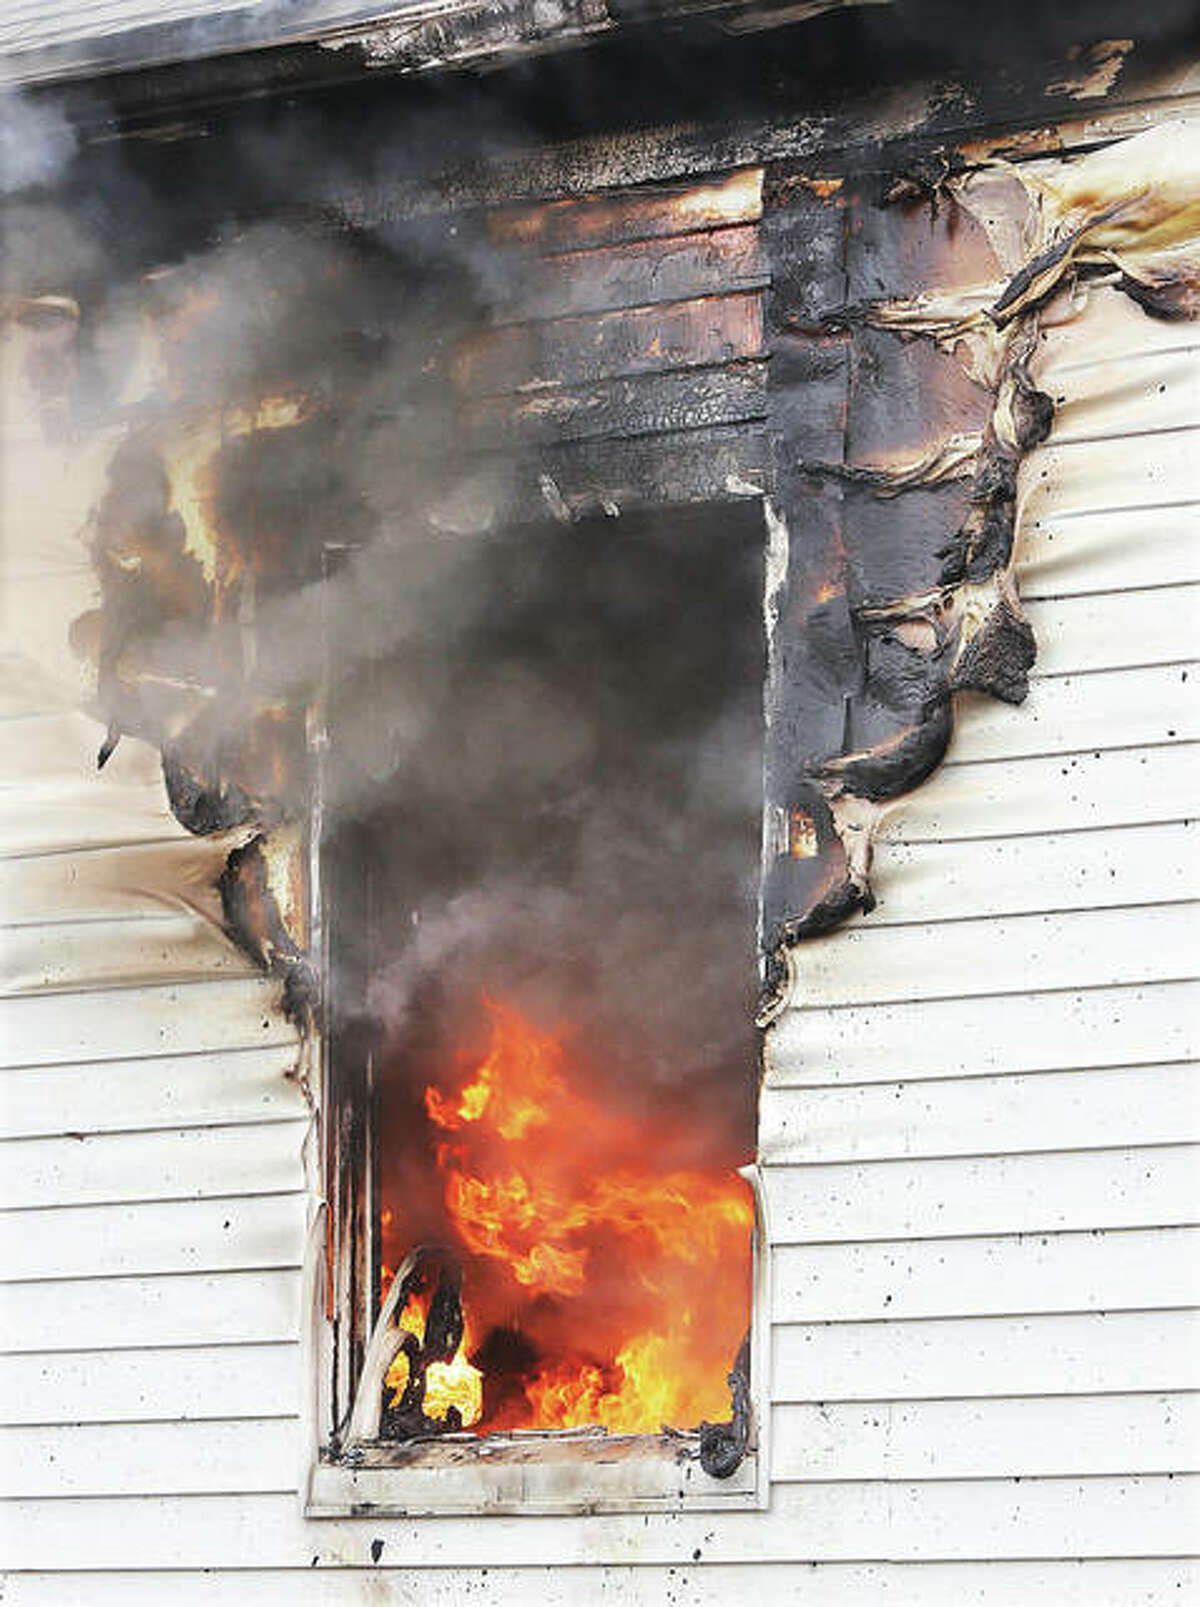 Flames can be seen roaring inside a room on the north side of the house Tuesday. No injuries were reported in the blaze.